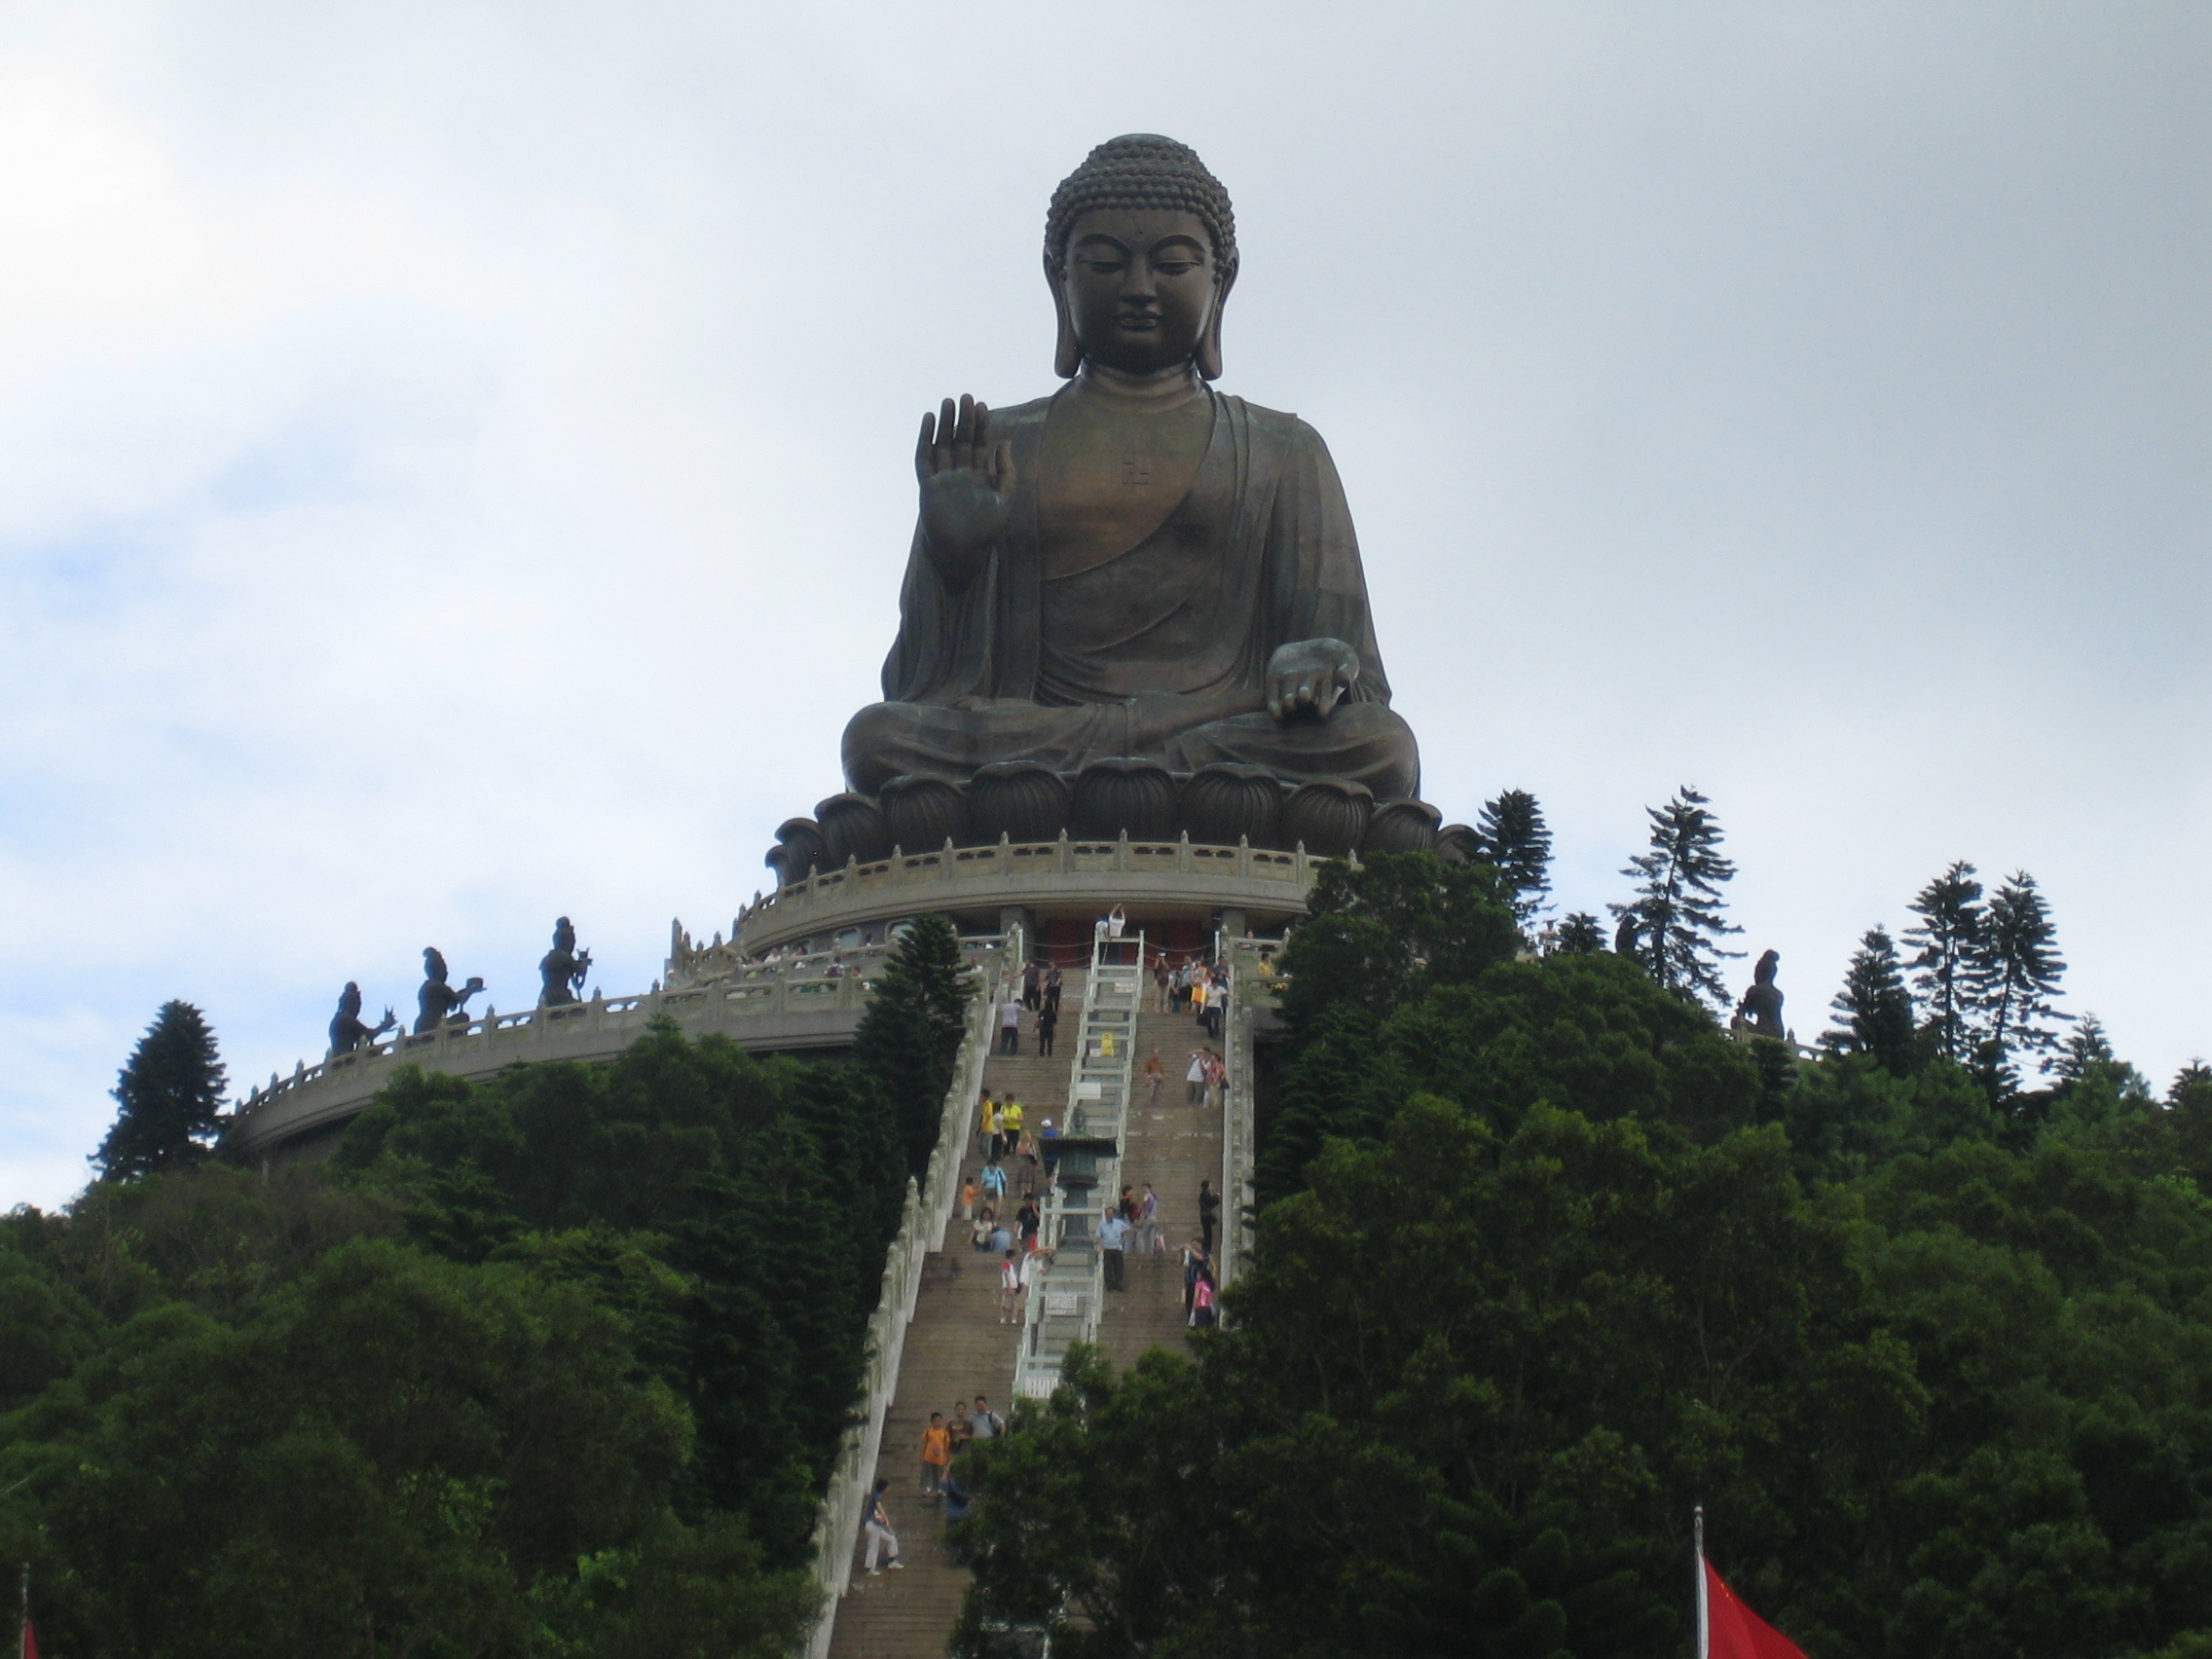 File:Big Buddha Statue at Lantau Island.JPG - Wikimedia Commons